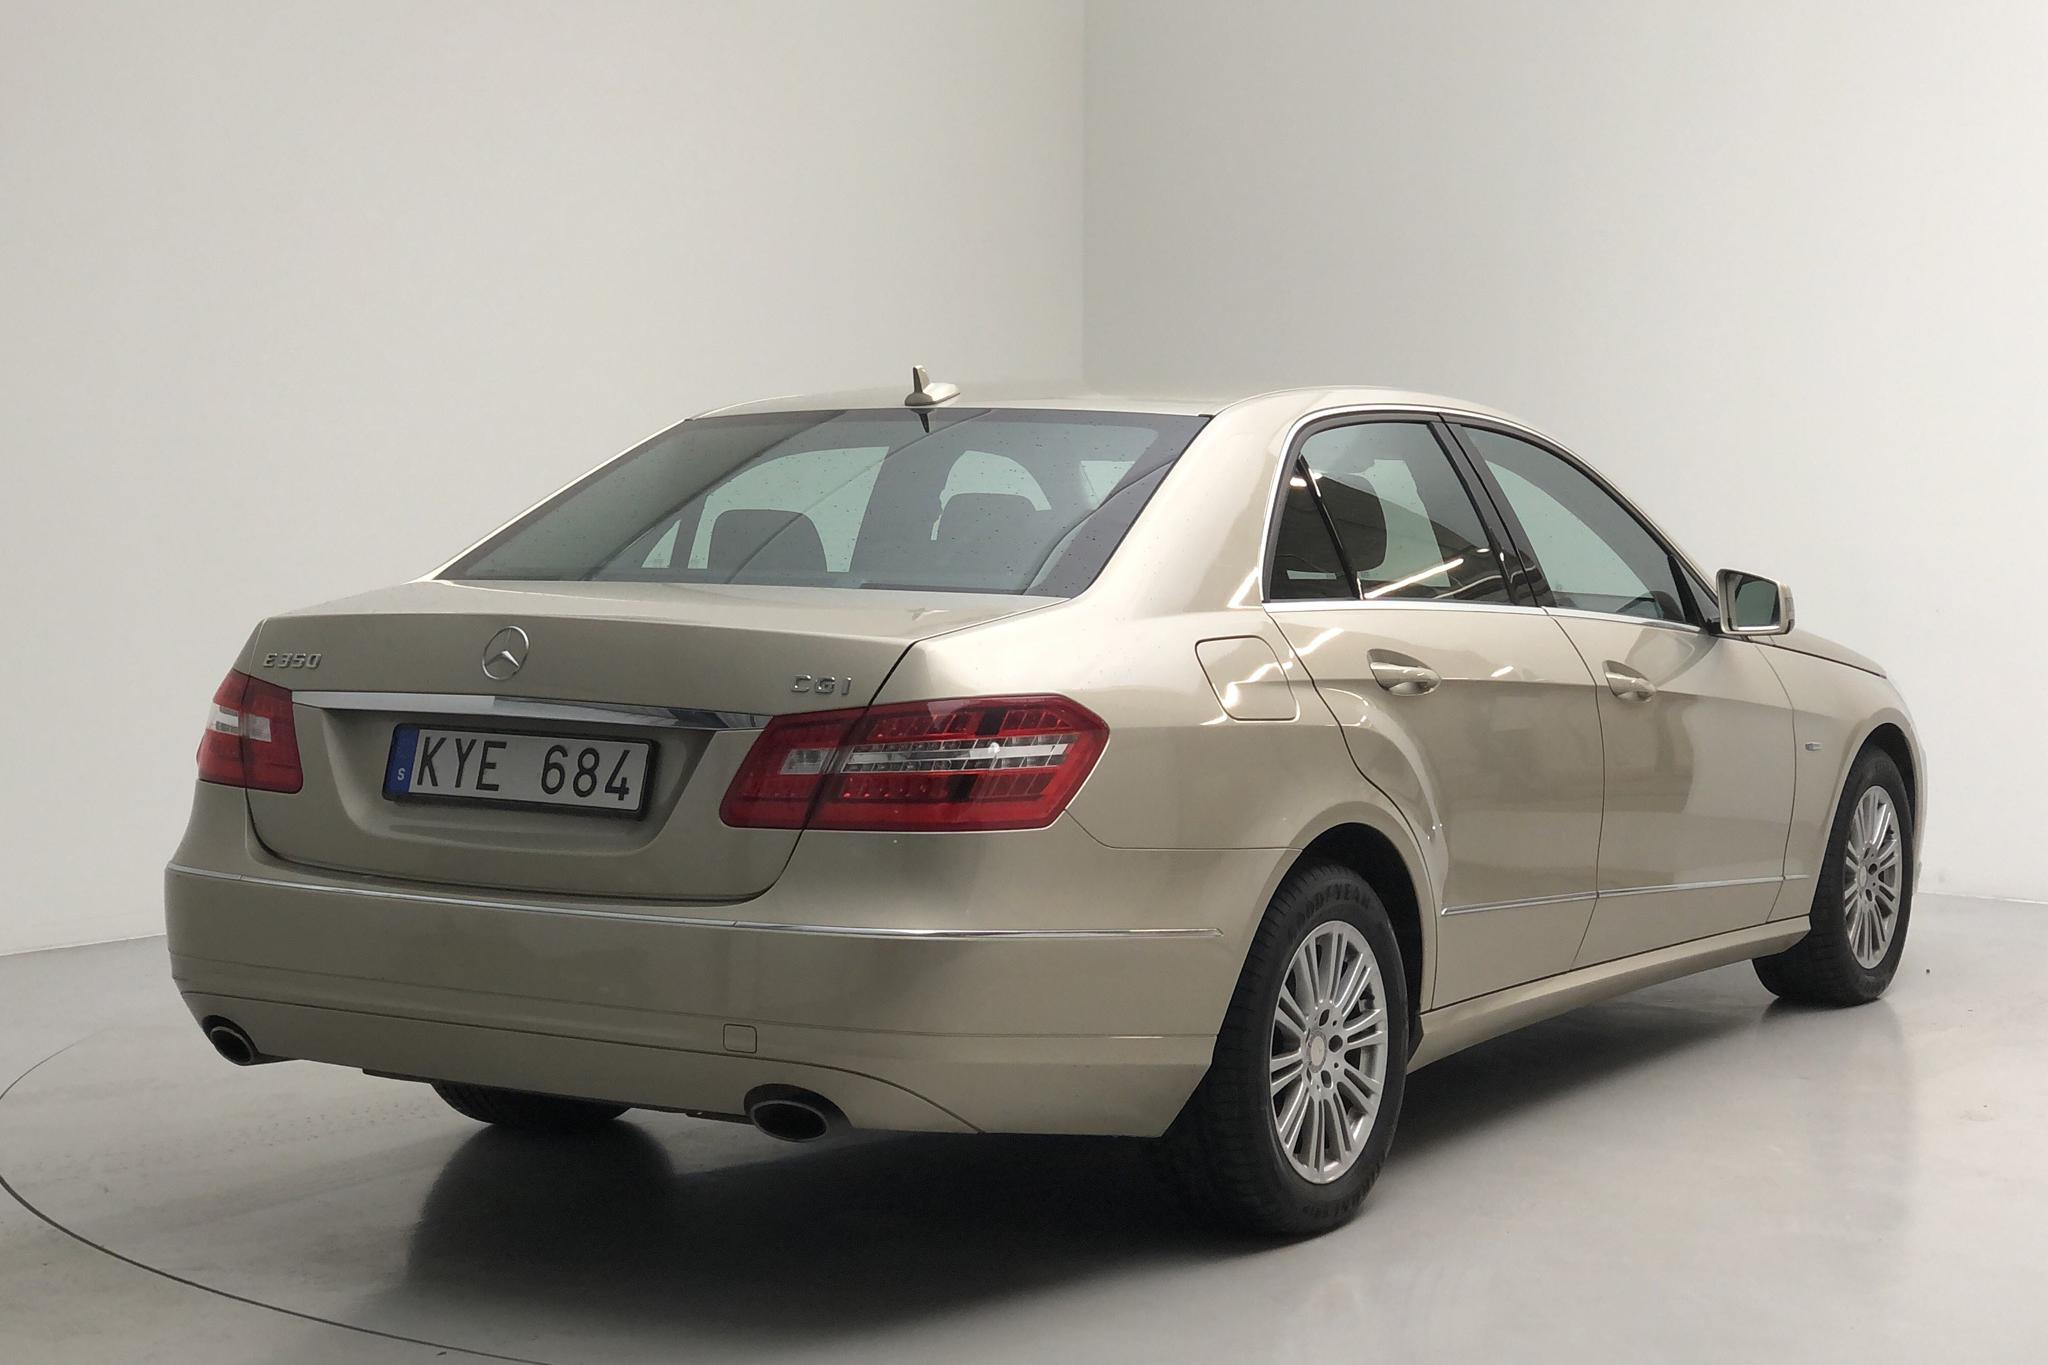 Mercedes E 350 W212 (292hk) - 12 682 mil - Automat - Light Brown - 2011